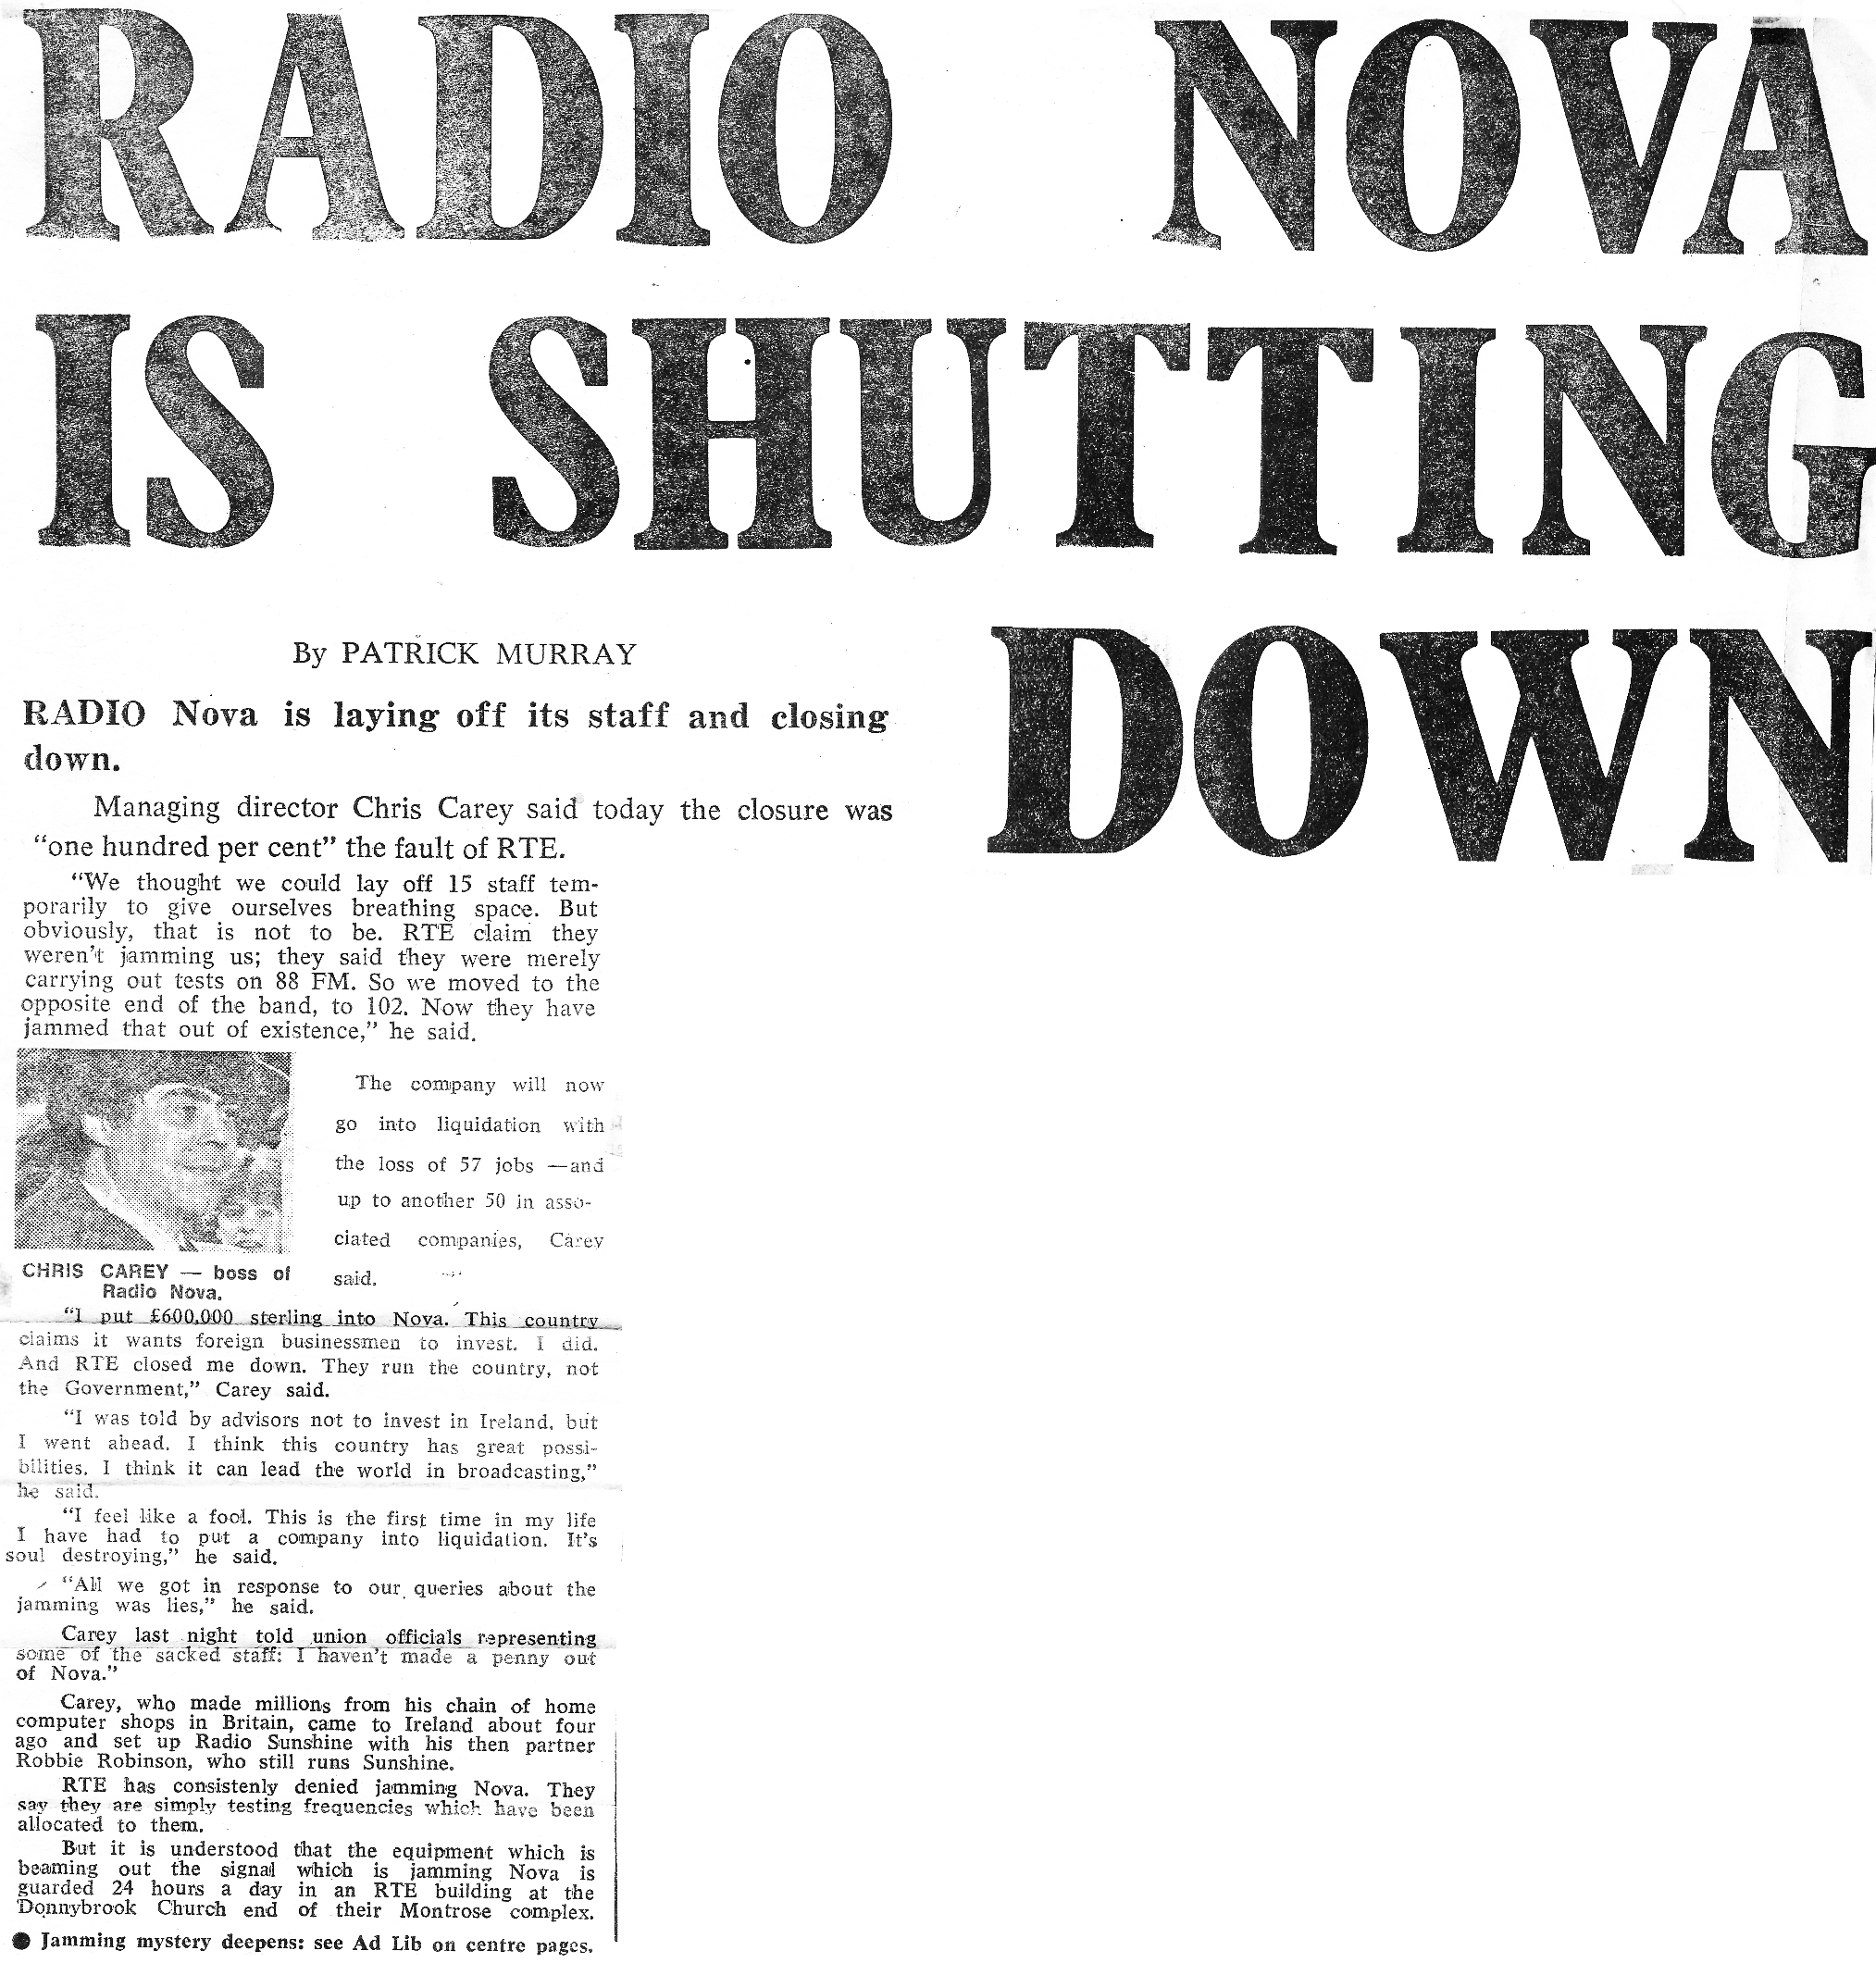 Radio Nova is shutting down was a newspaper headline from The Evening Herald dated February 2nd 1984